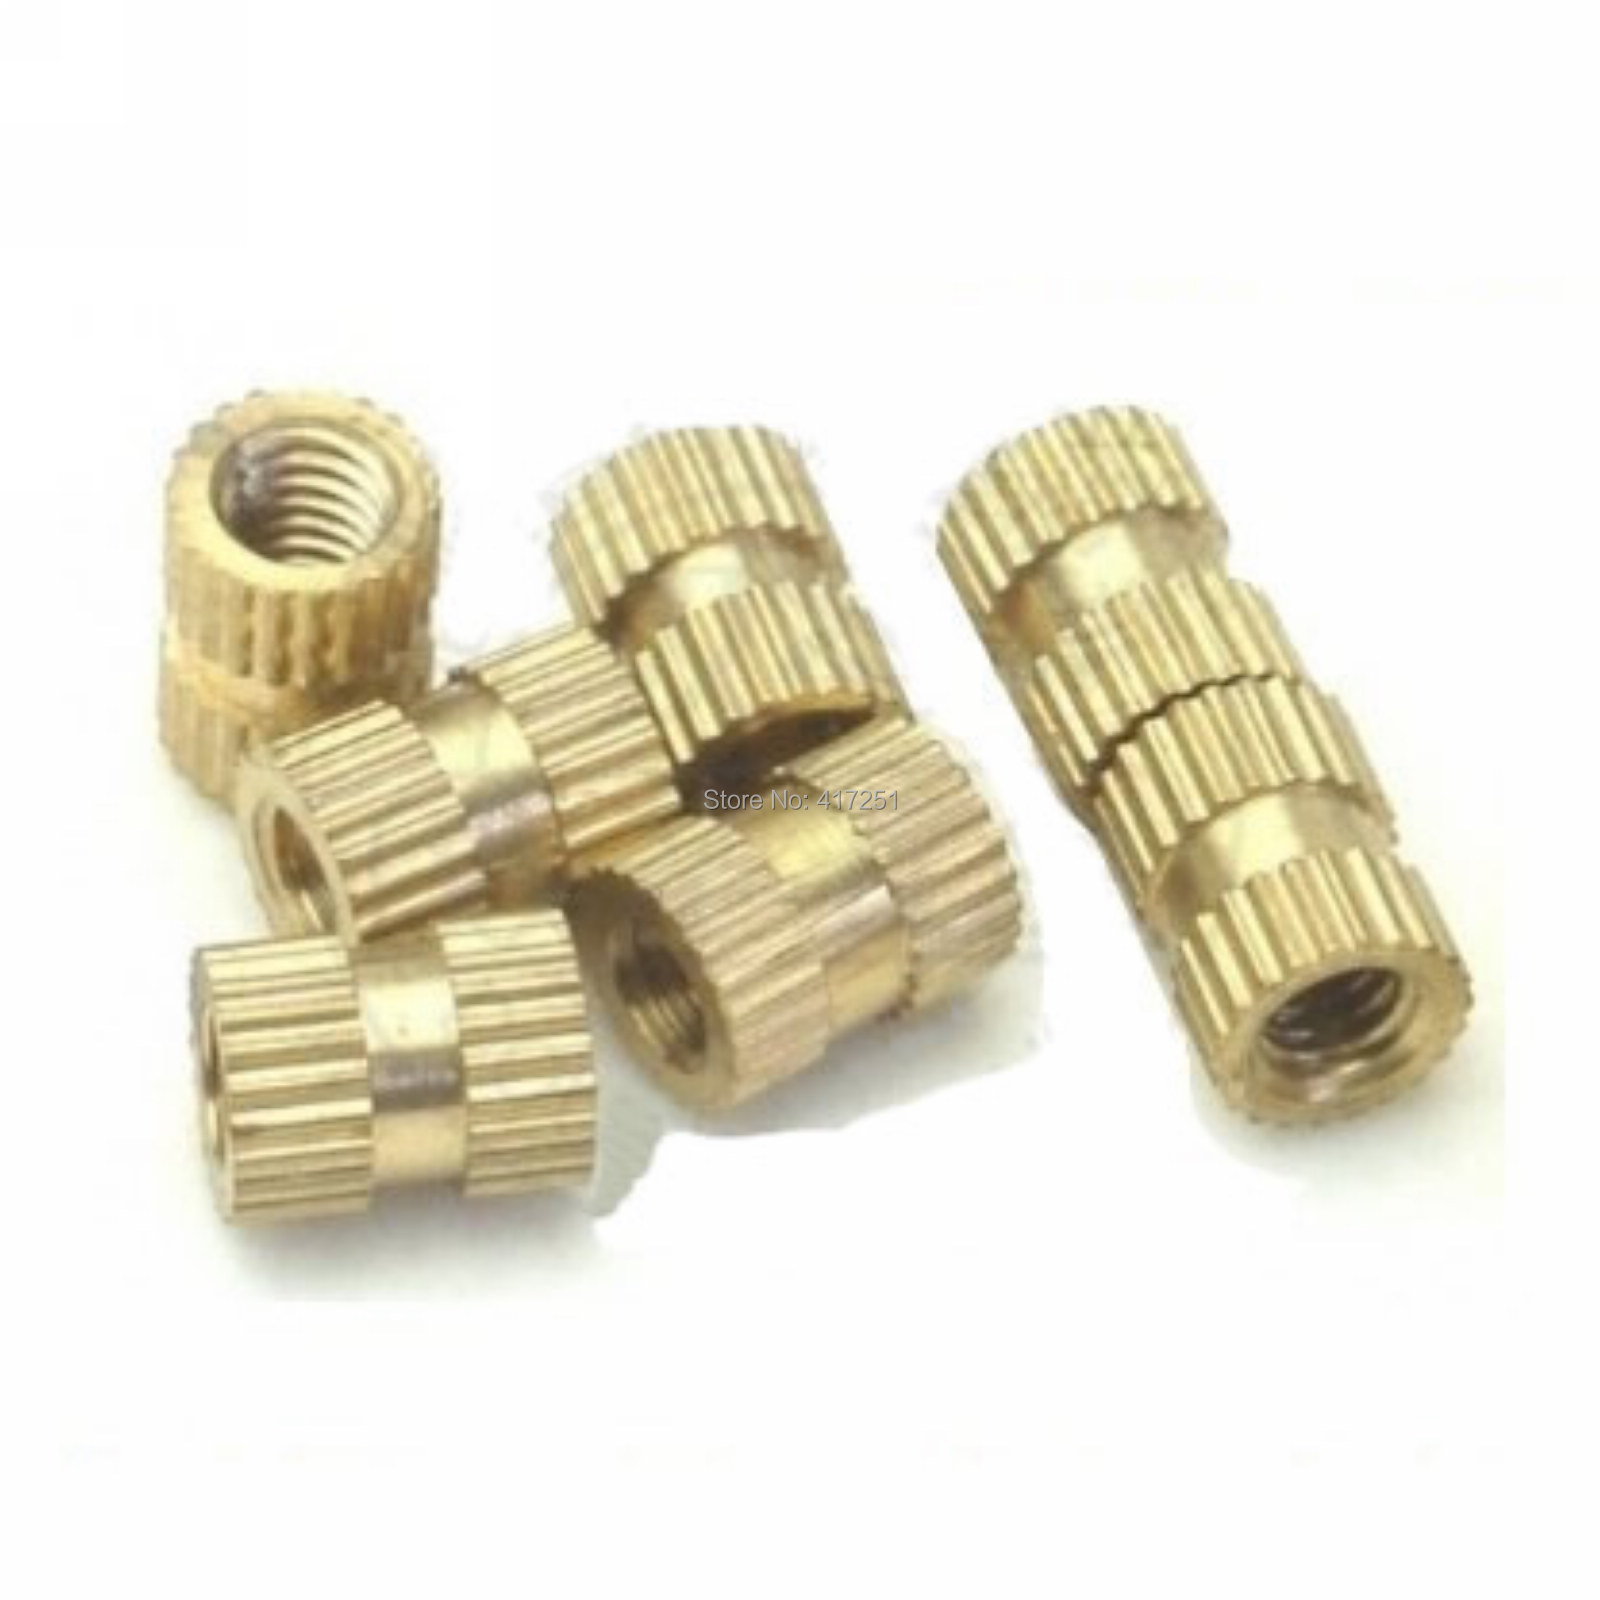 Гаджет  Low price 1 piece Brass Knurl Nuts M8*8mm(L)-10mm(OD) Metric Threaded None Аппаратные средства